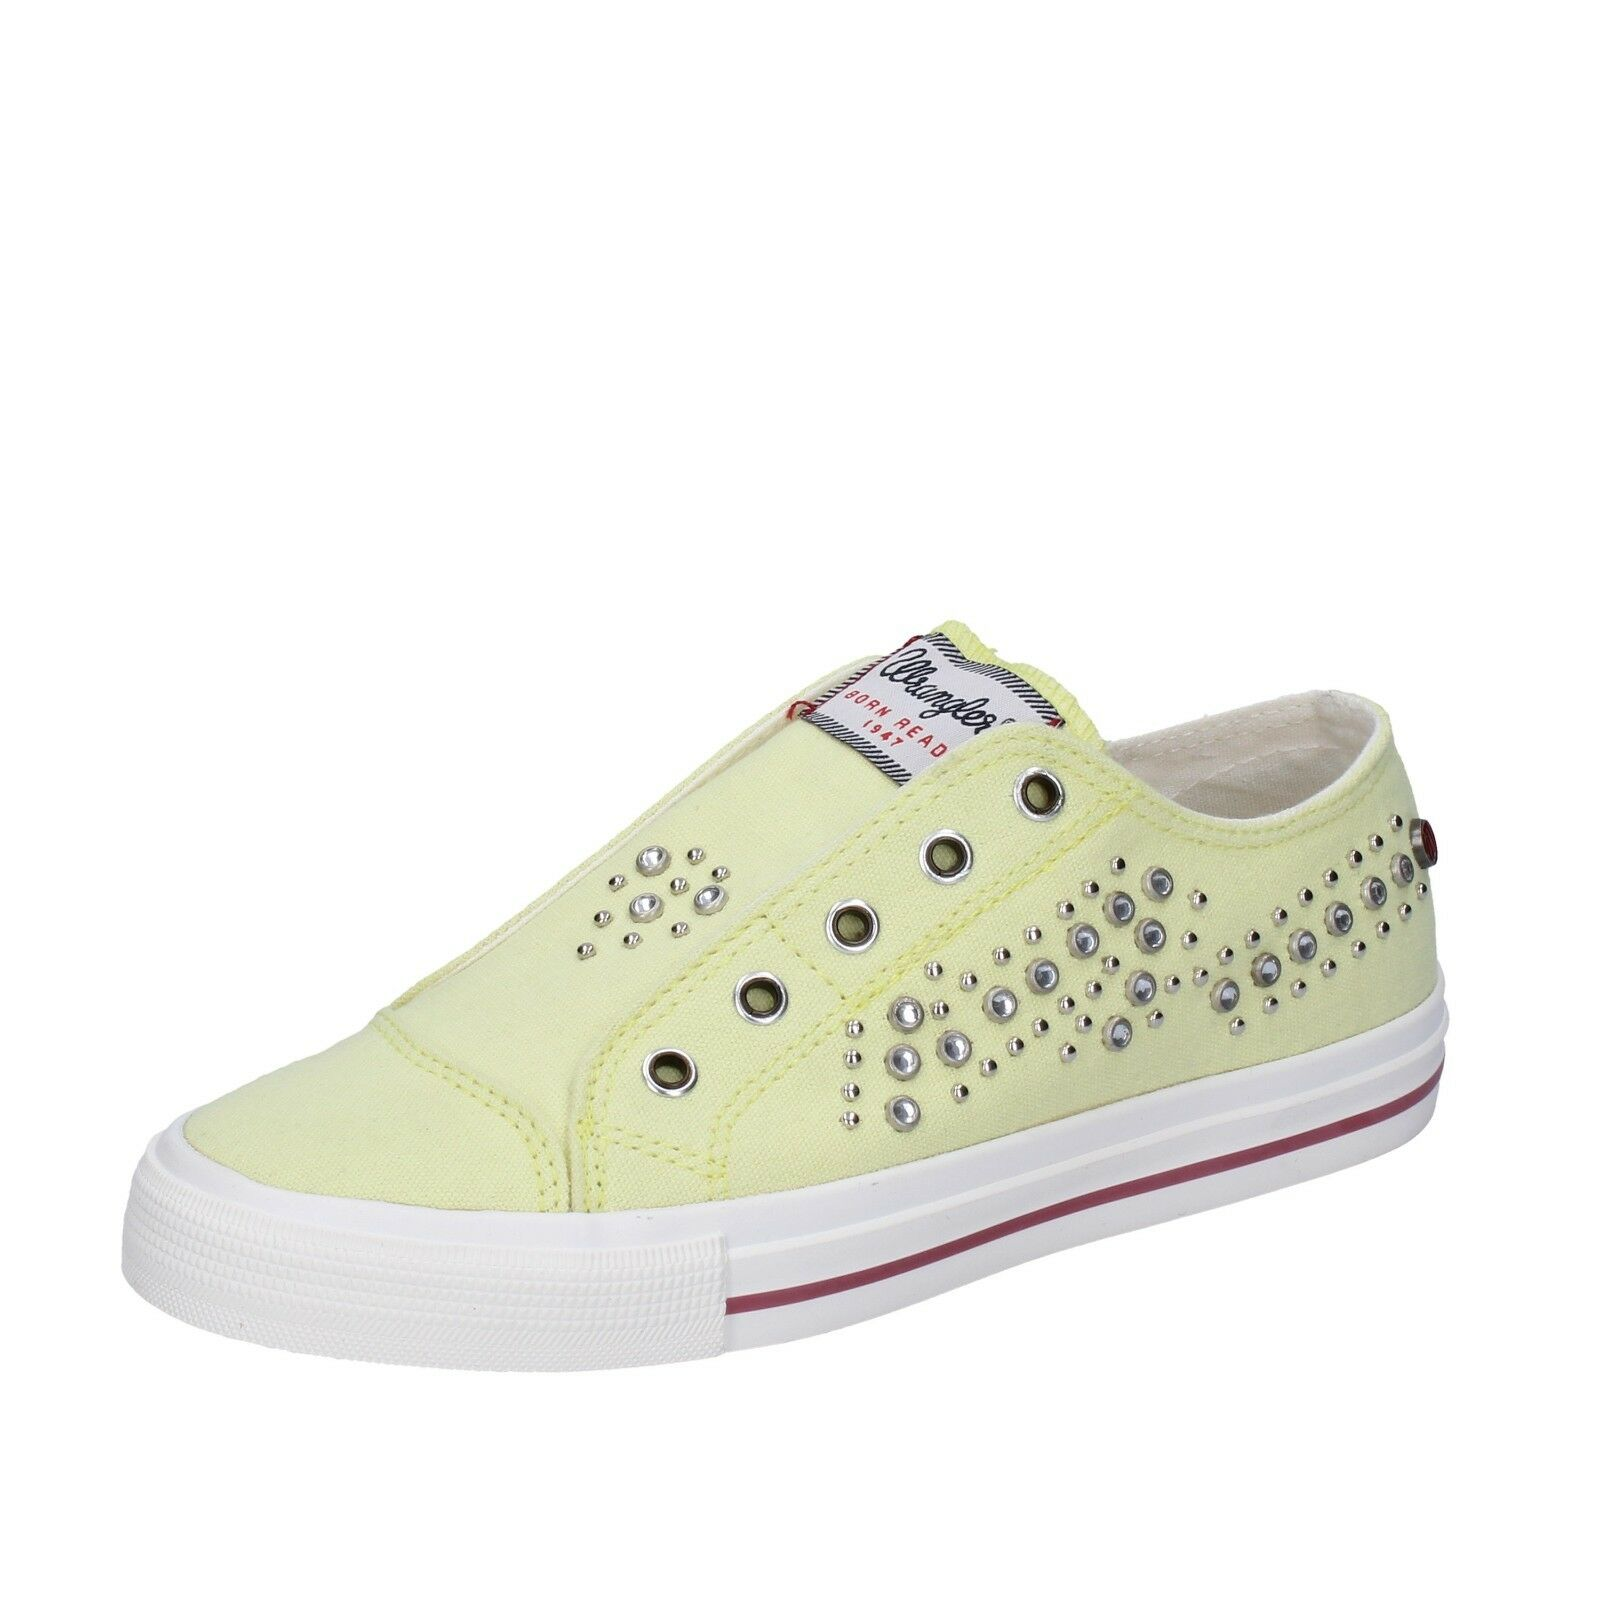 Womens shoes WRANGLER 4 () sneakers yellow canvas BT775-37